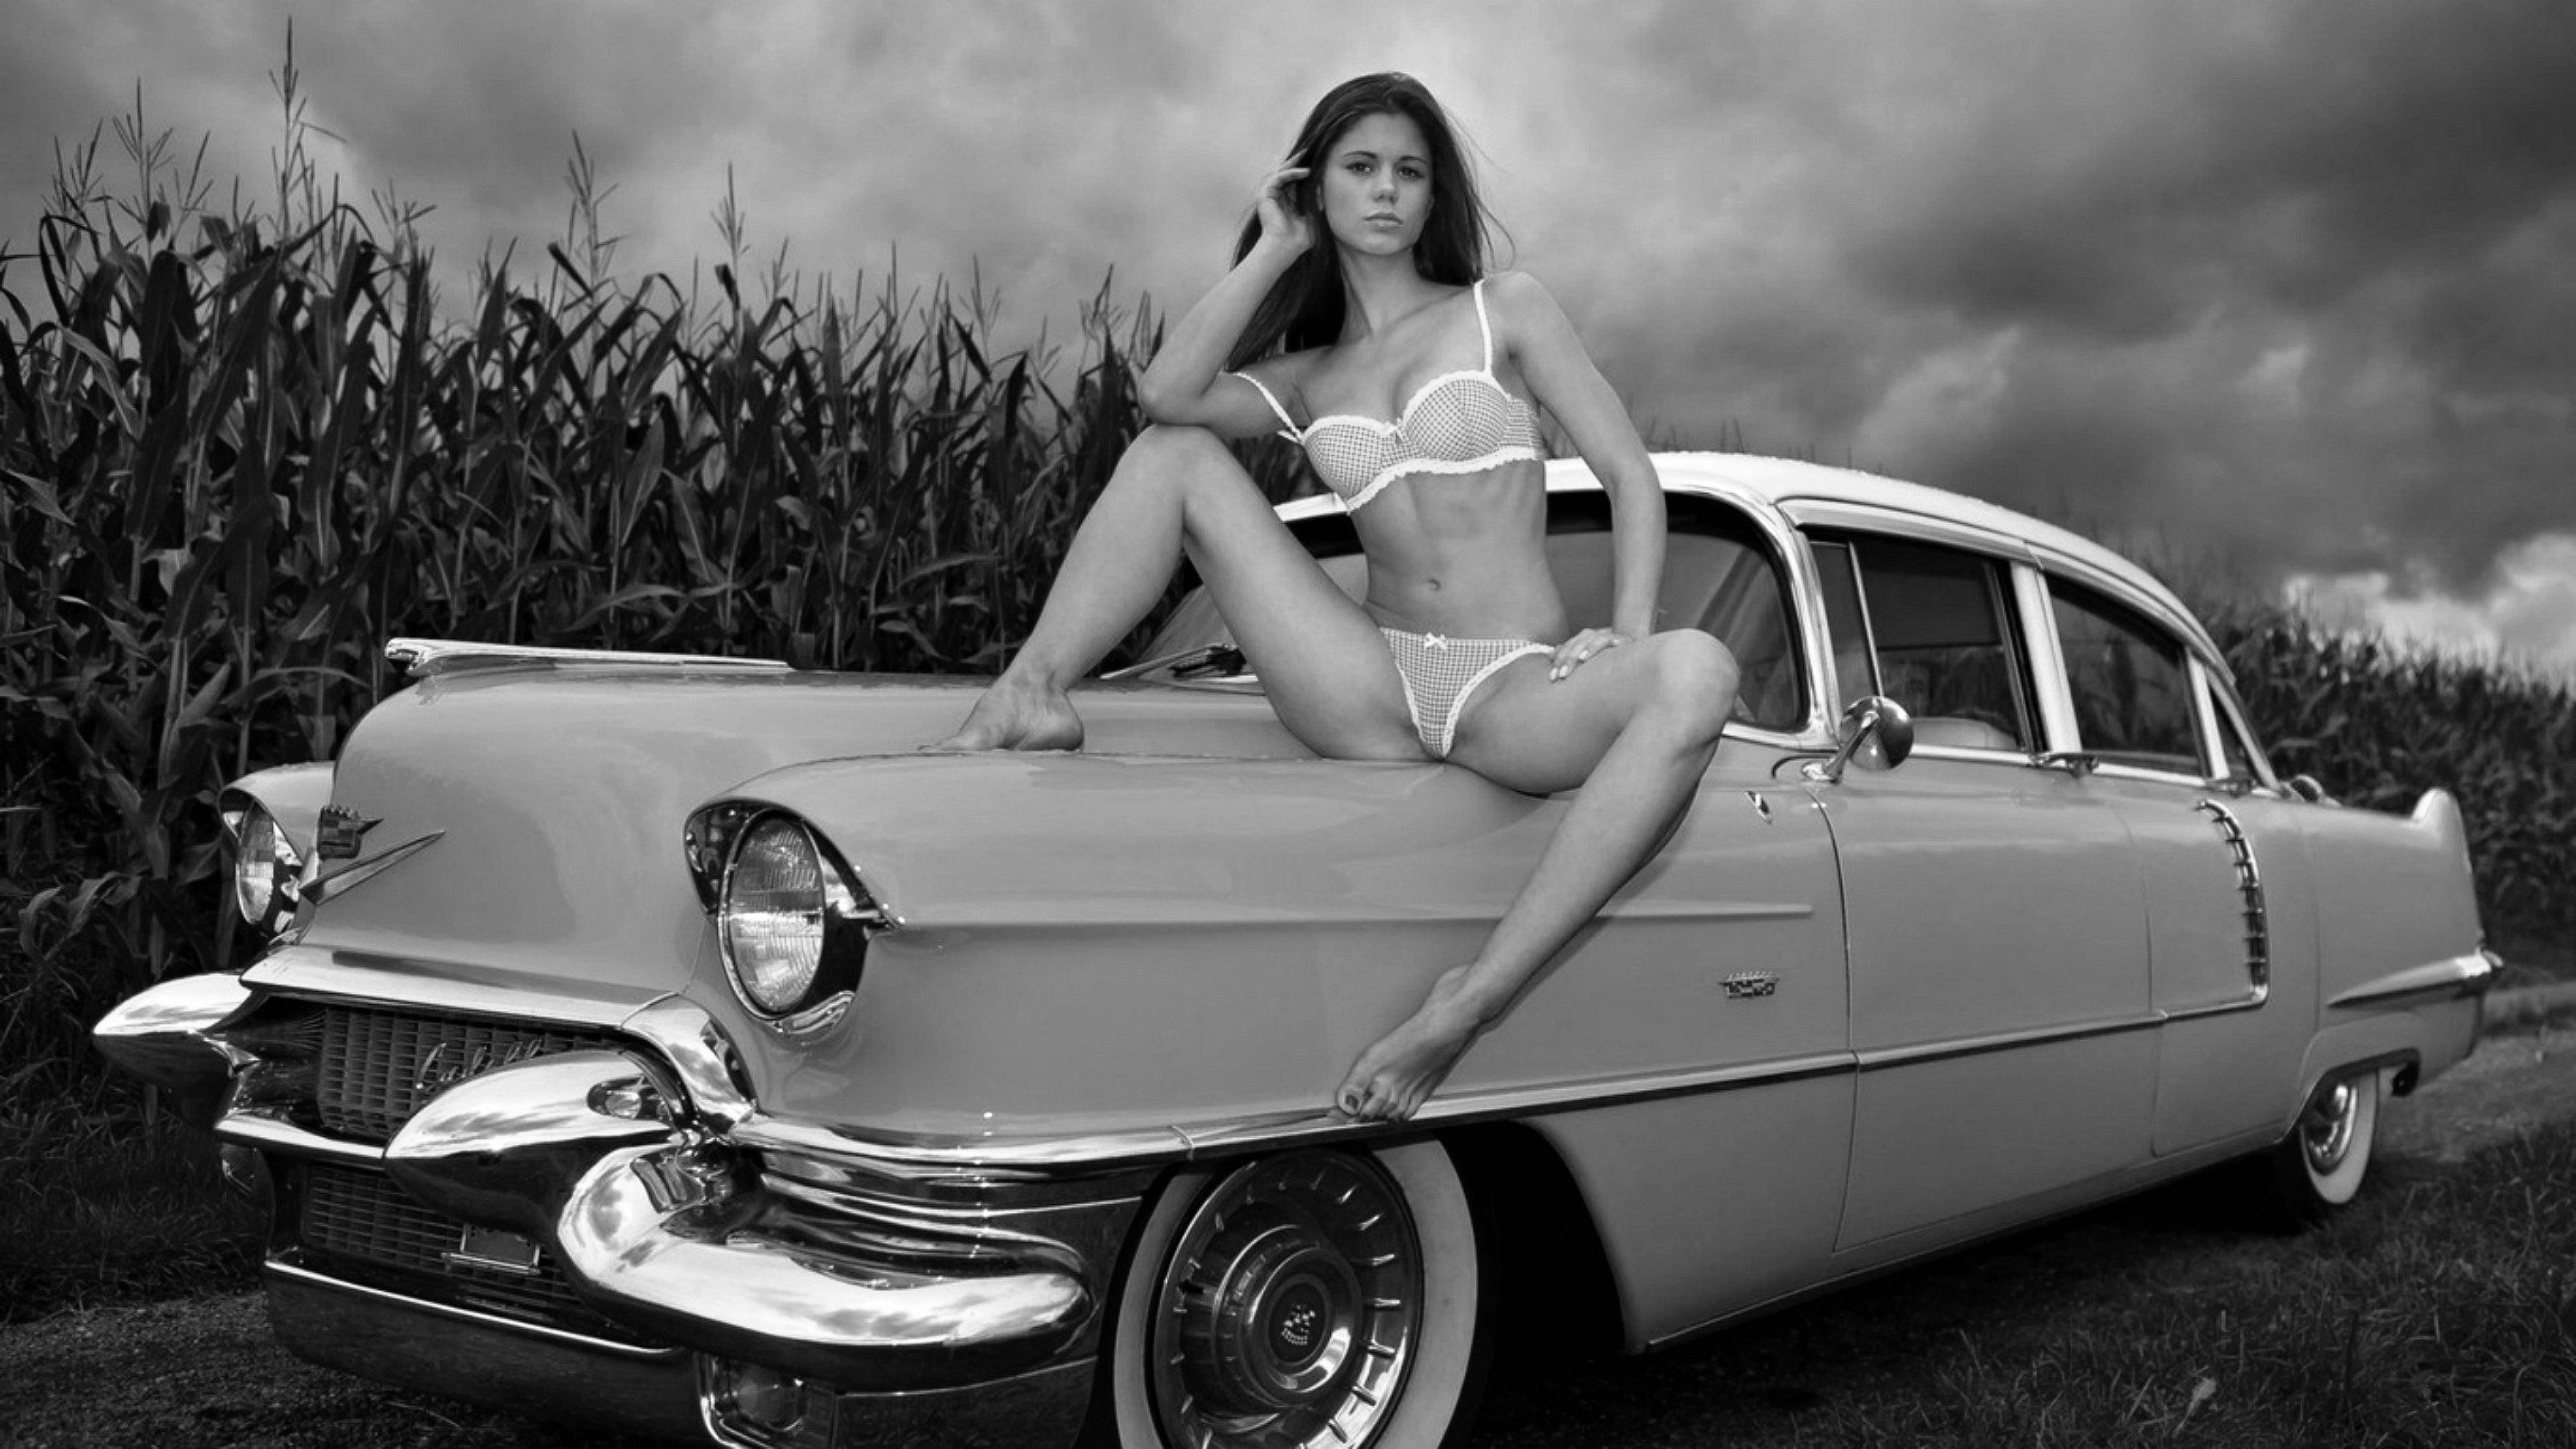 boobs-world-naked-little-girls-and-women-in-cars-hard-fuck